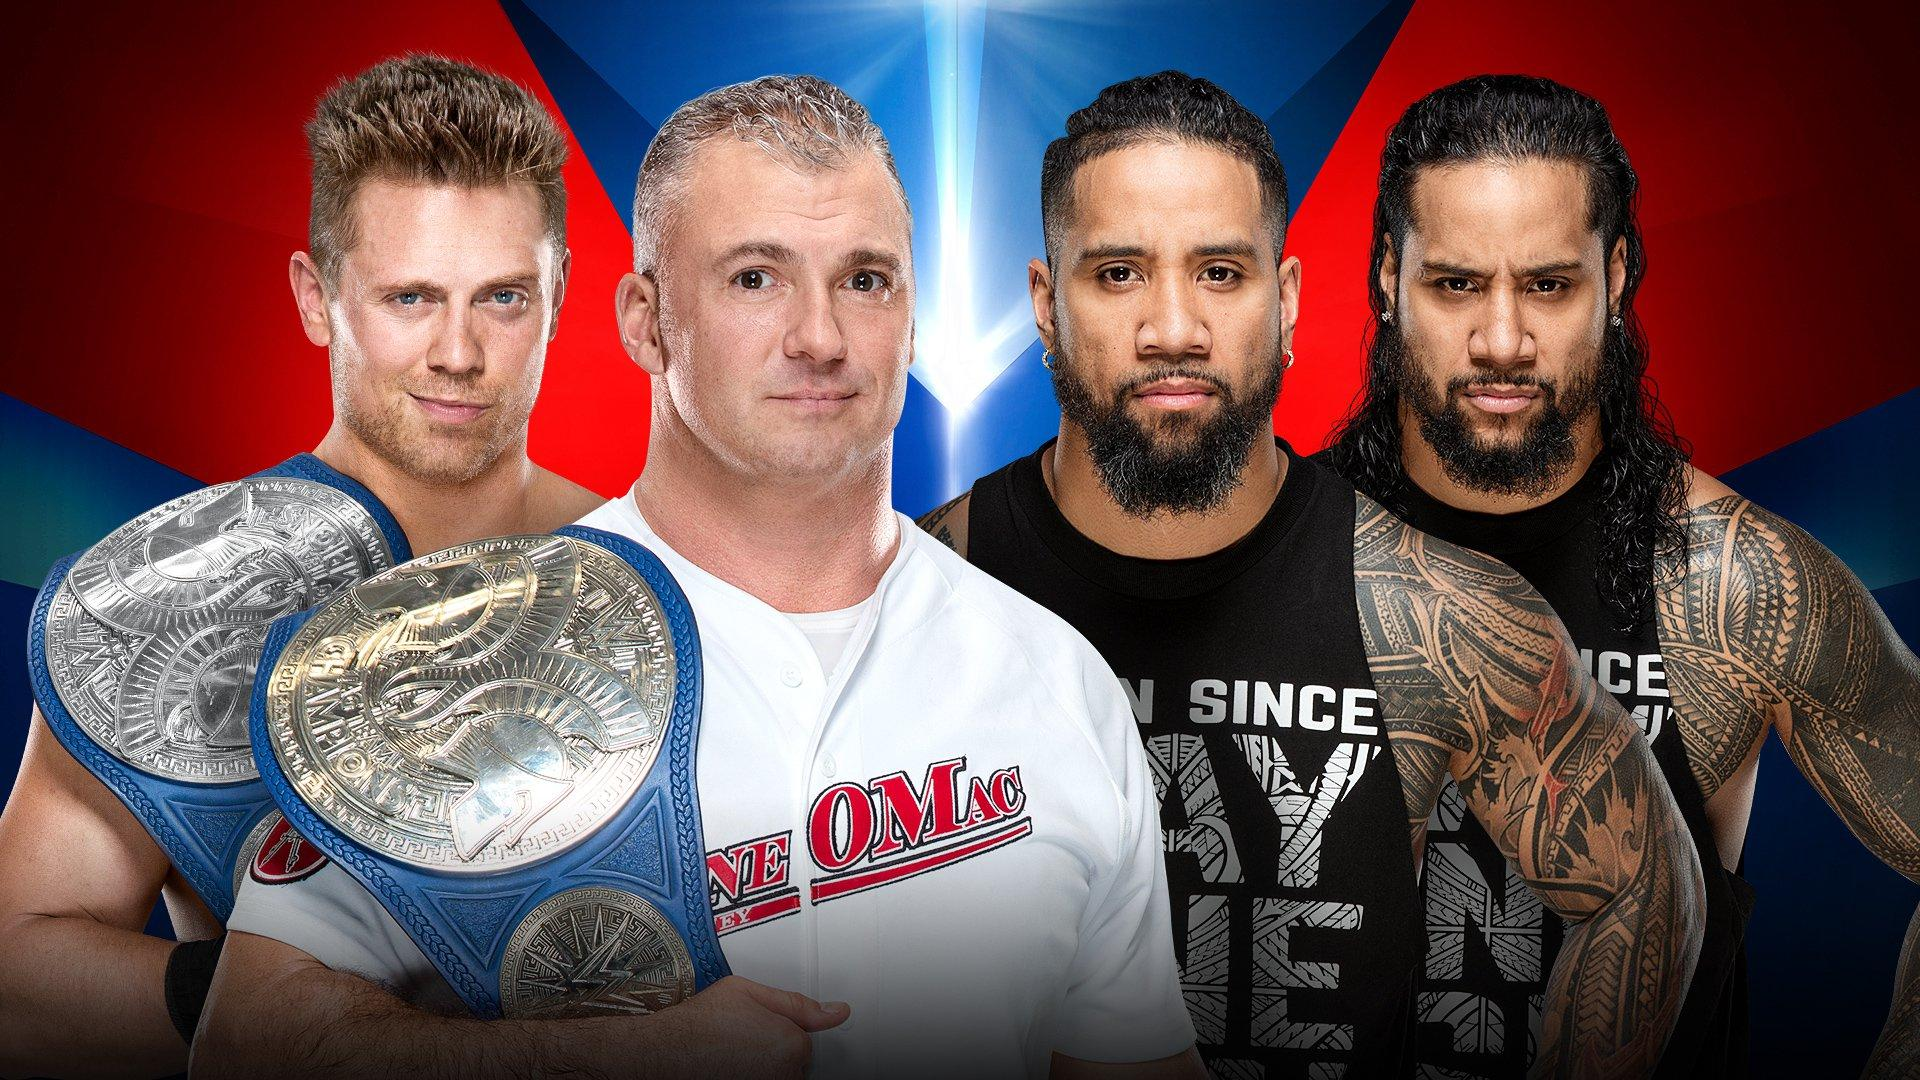 SmackDown Tag Team Champions The Miz et Shane McMahon vs The Usos